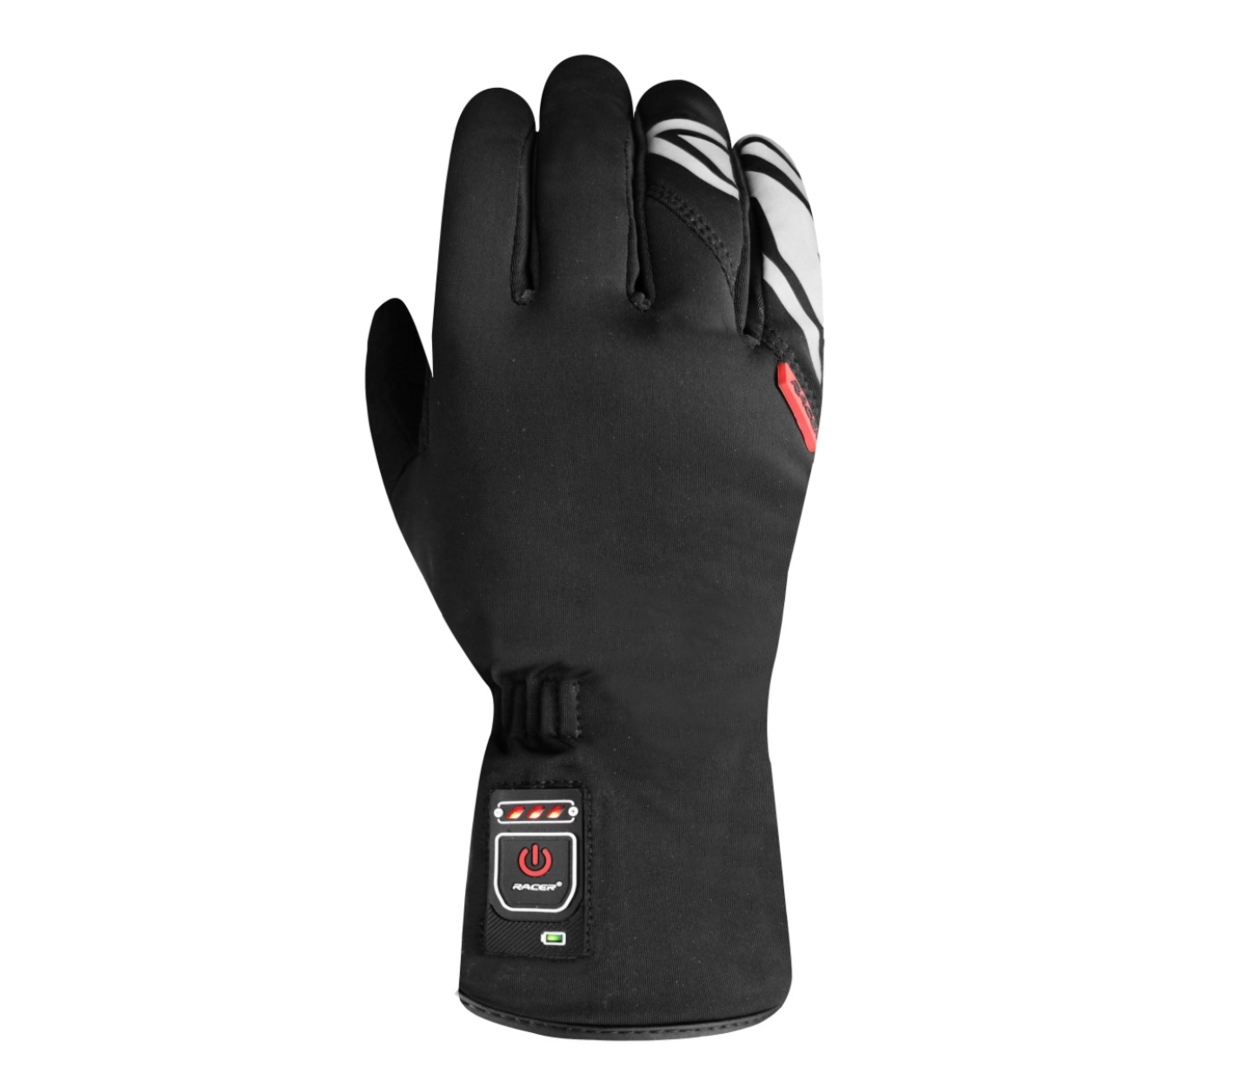 gants racer e glove 2 chauffant equipements v lo textiles bmx avenue. Black Bedroom Furniture Sets. Home Design Ideas